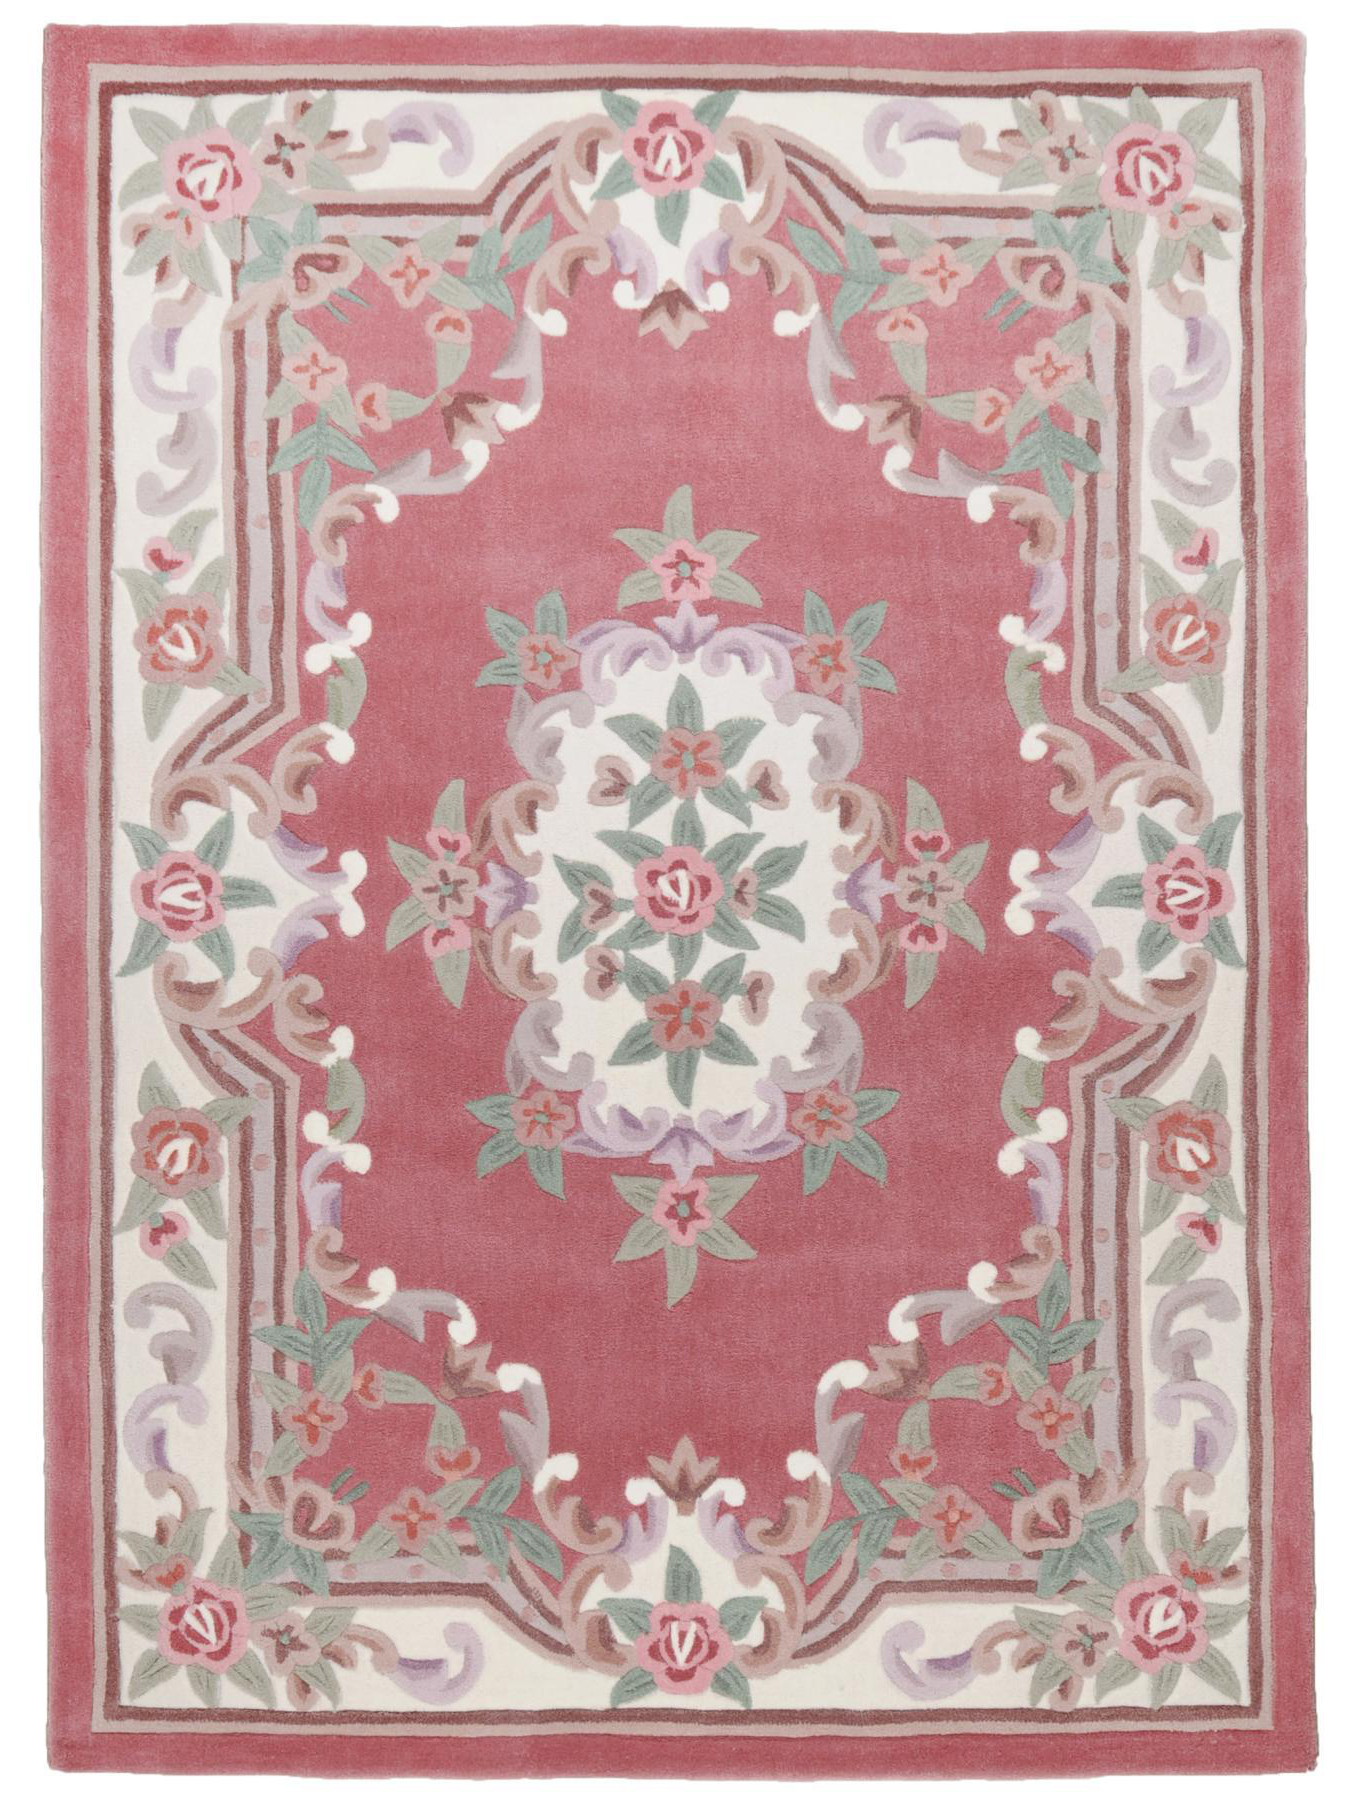 aubusson rose tapis chinois n 32316 290x190cm. Black Bedroom Furniture Sets. Home Design Ideas